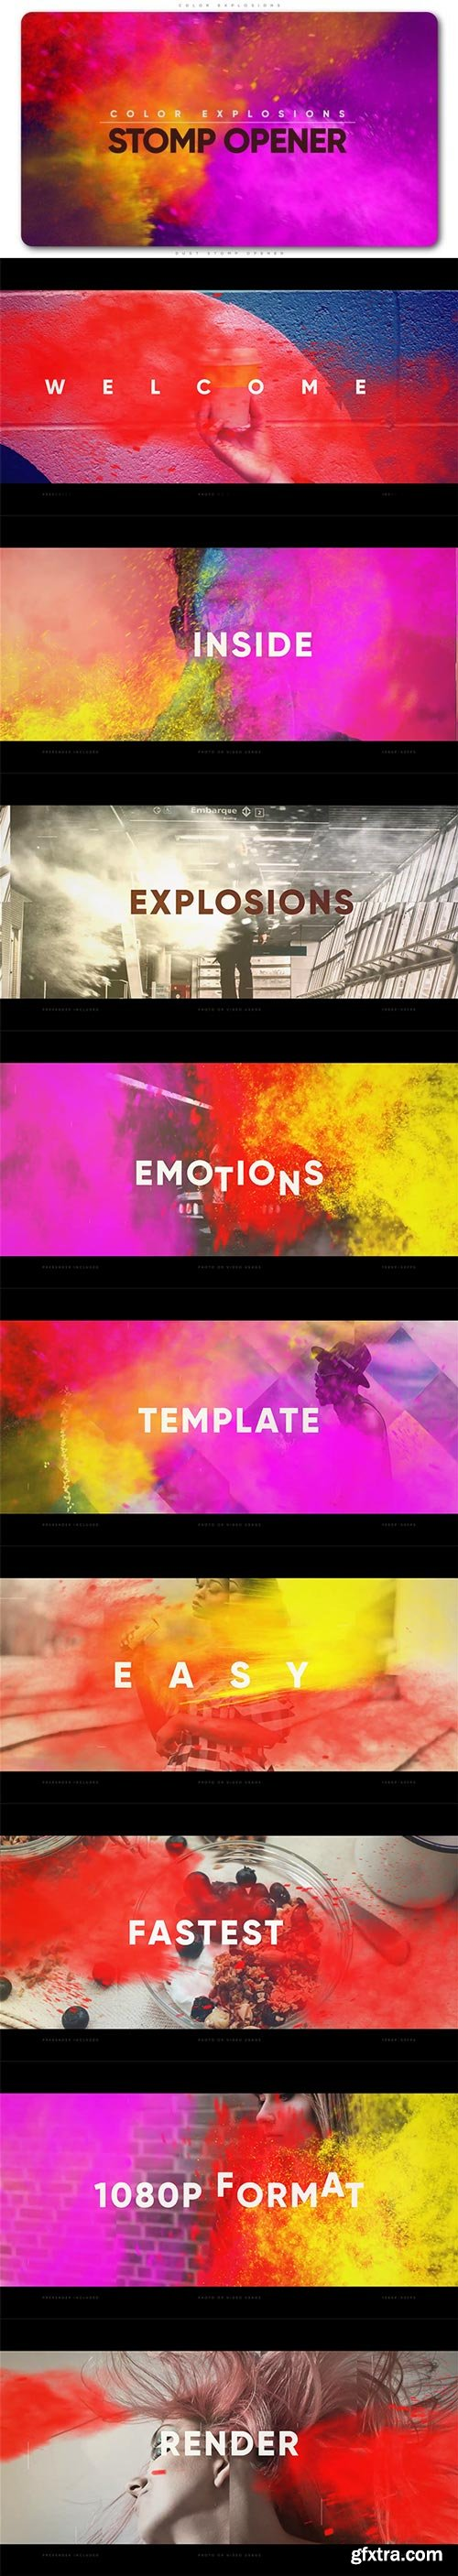 Videohive - Color Explosions Stomp Opener - 21842558